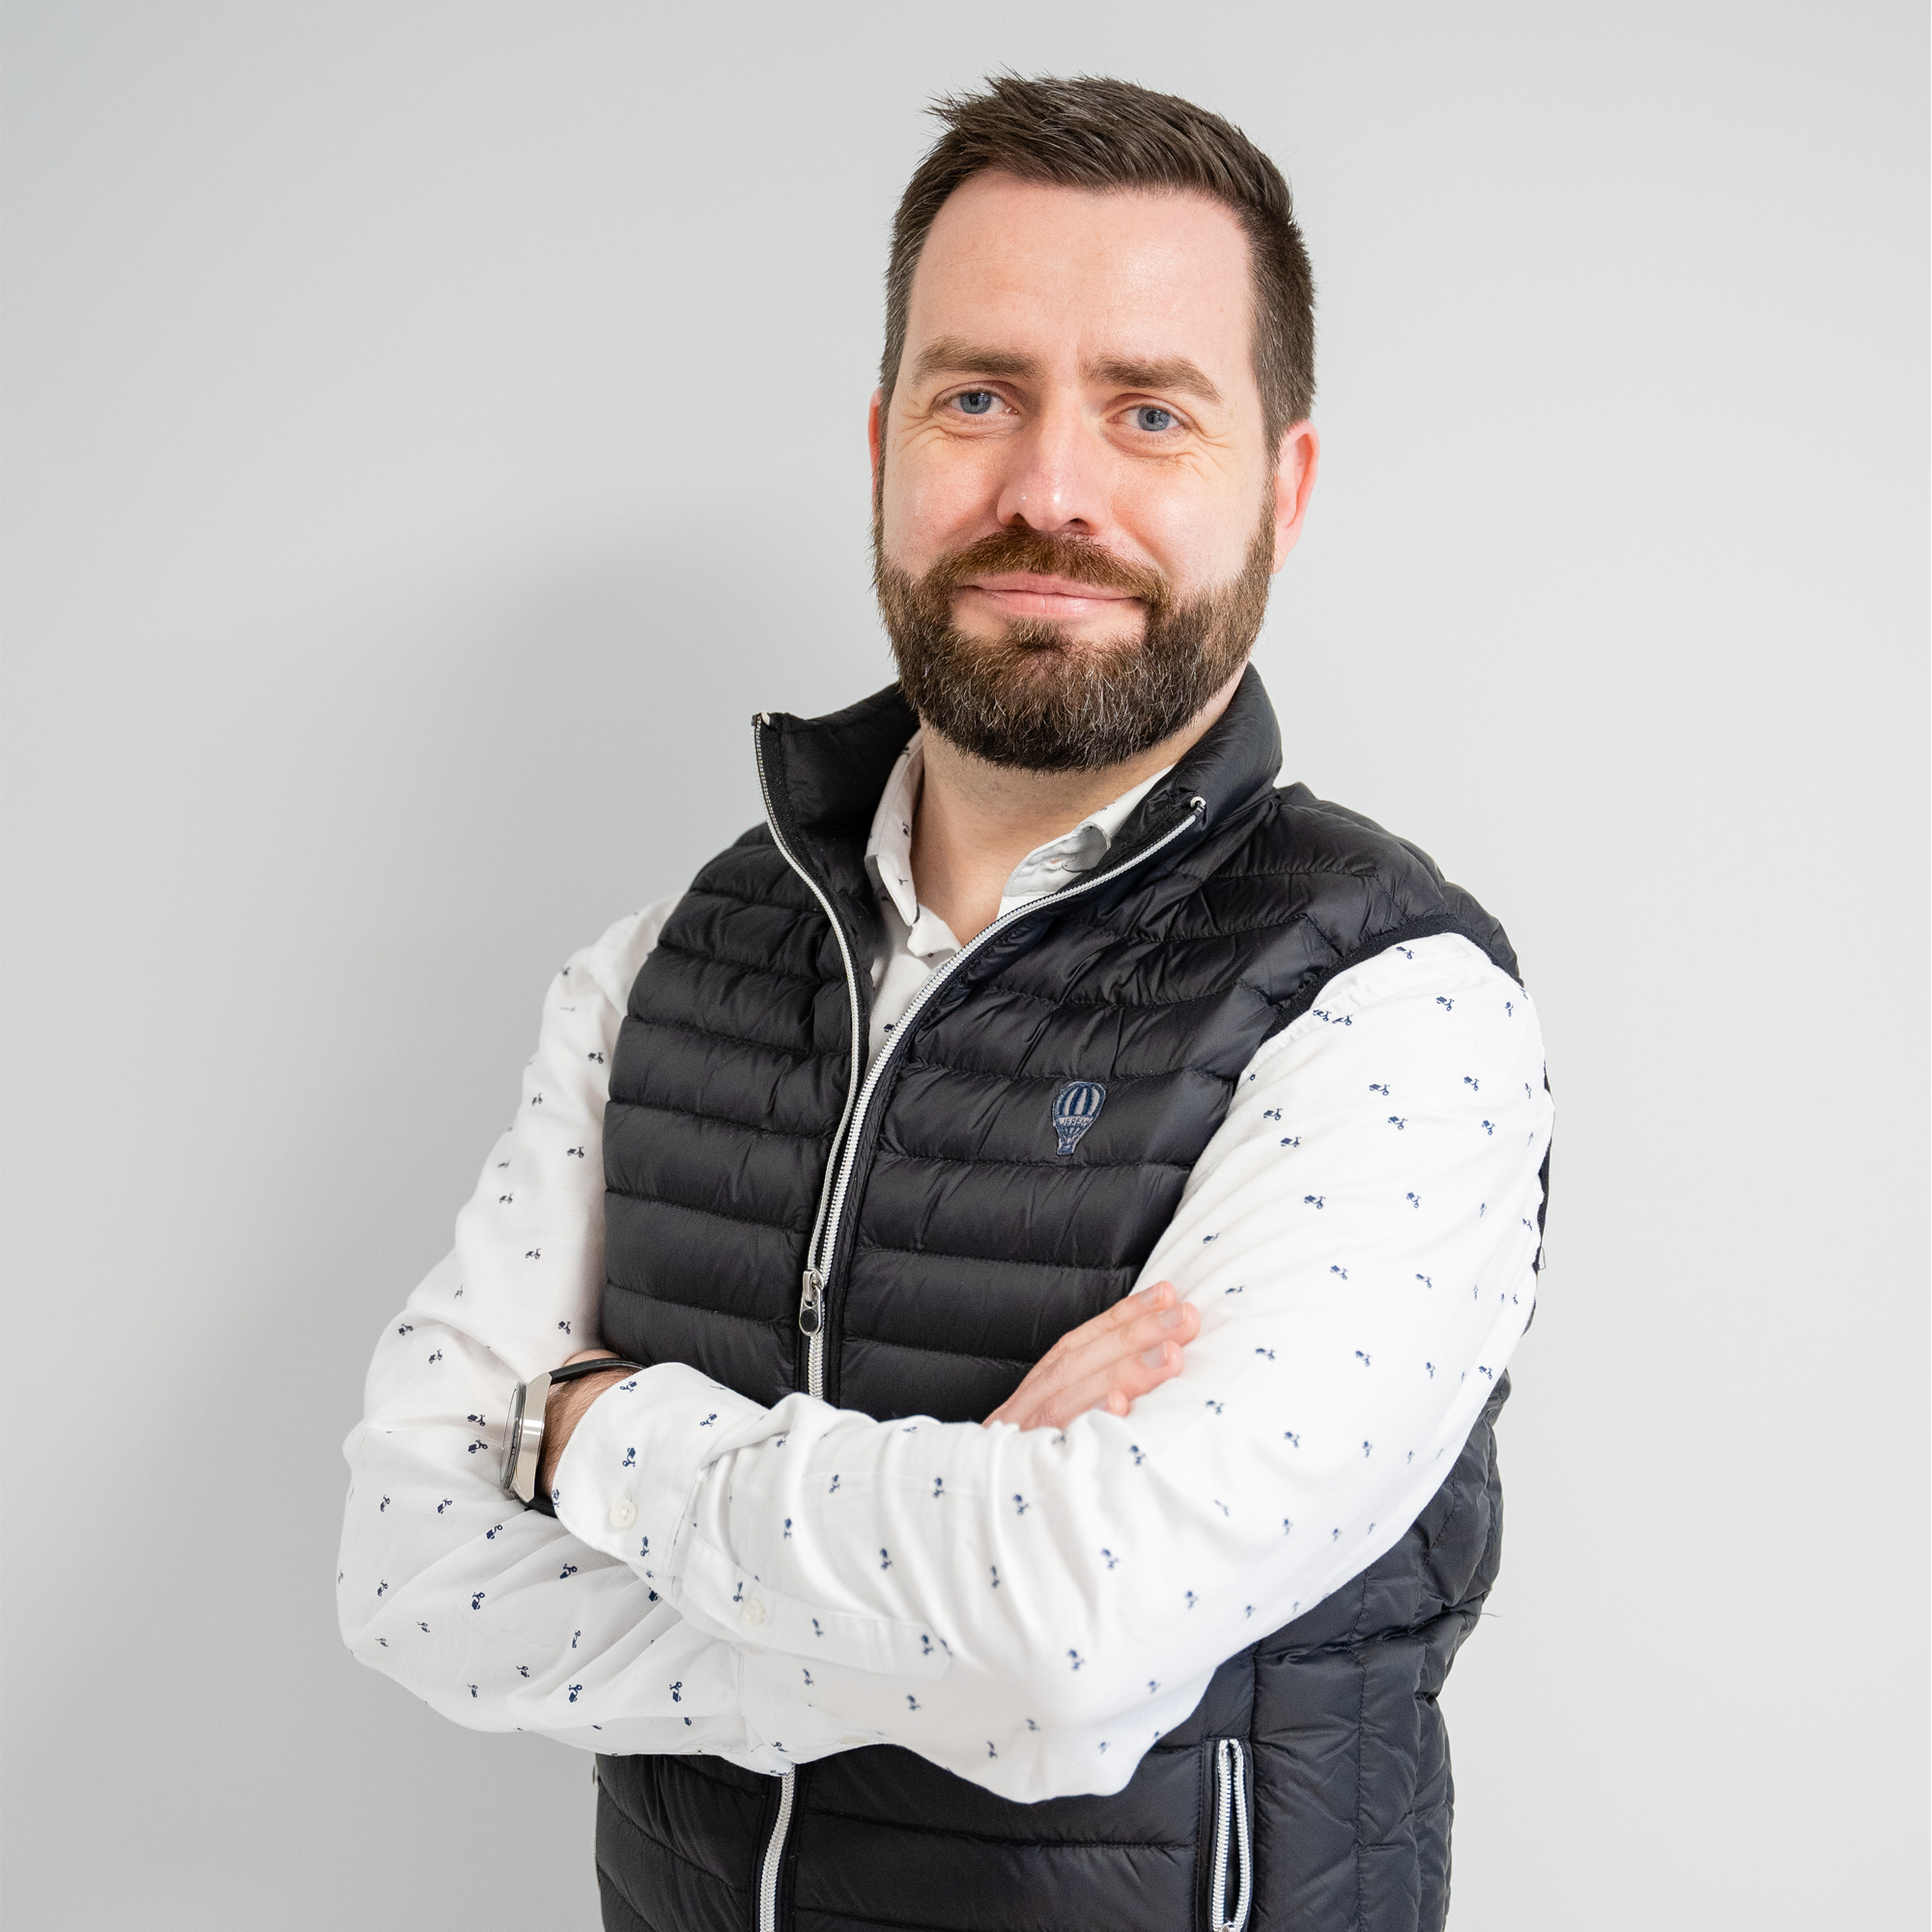 Marcos Engroba - Sales Manager